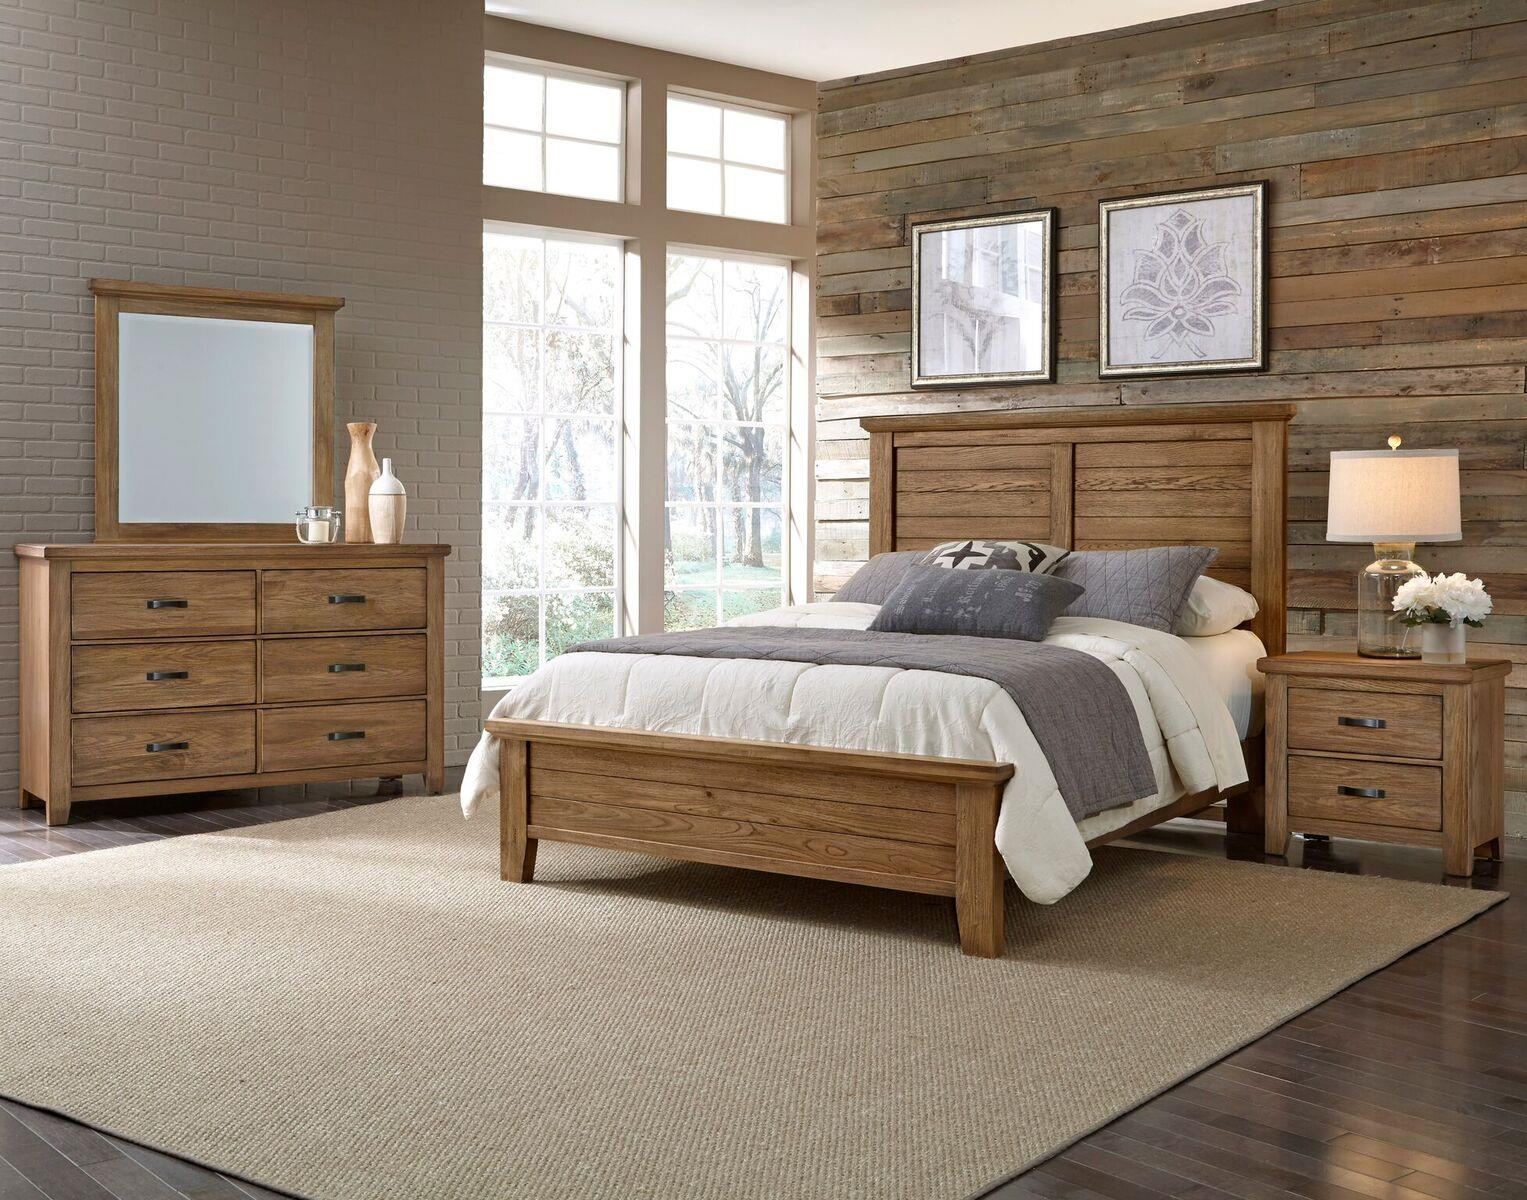 Vaughan Bassett Cassell Park Queen Bedroom Group - Item Number: 514 Q Bedroom Group 1